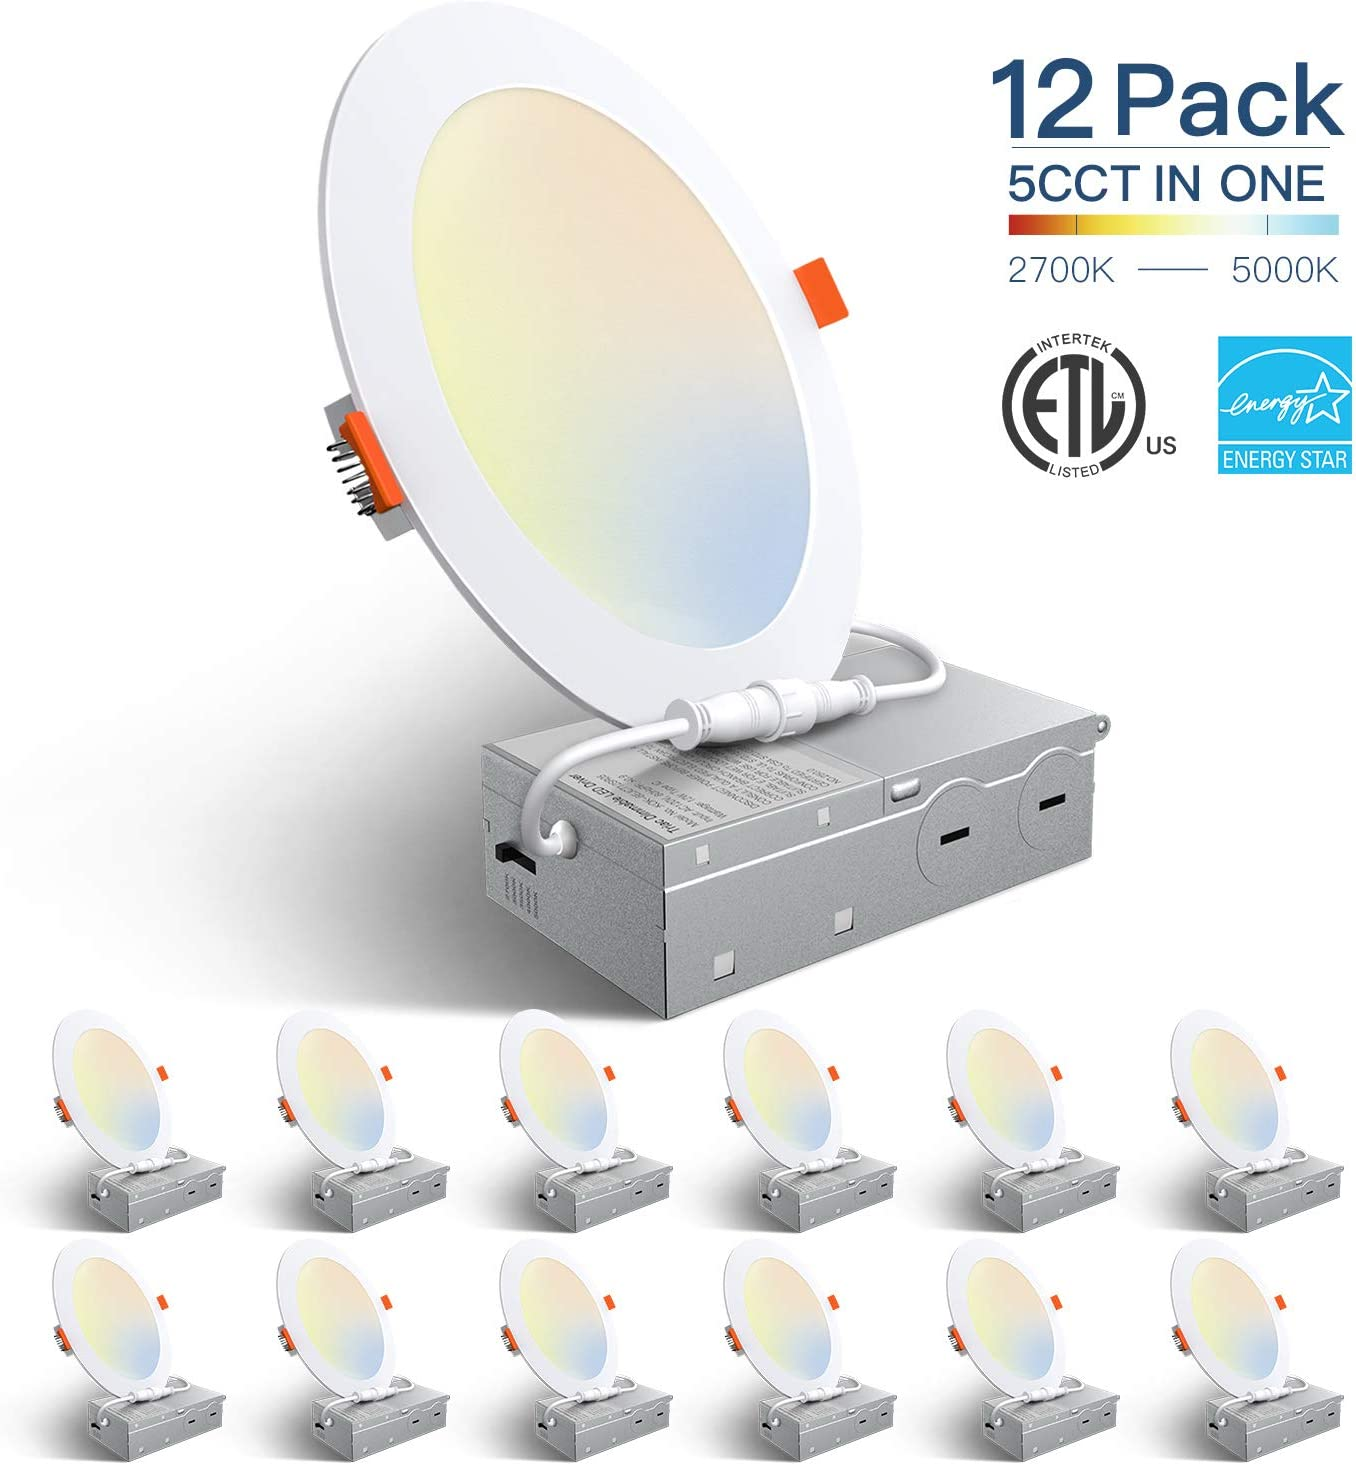 Amico 12 Pack 6 Inch 5CCT Ultra-Thin LED Recessed Ceiling Light with Junction Box, 2700K-5000K Selectable, 12W Eqv 110W, Dimmable Can-Killer Downlight, 1050LM High Brightness - ETL and Energy Star